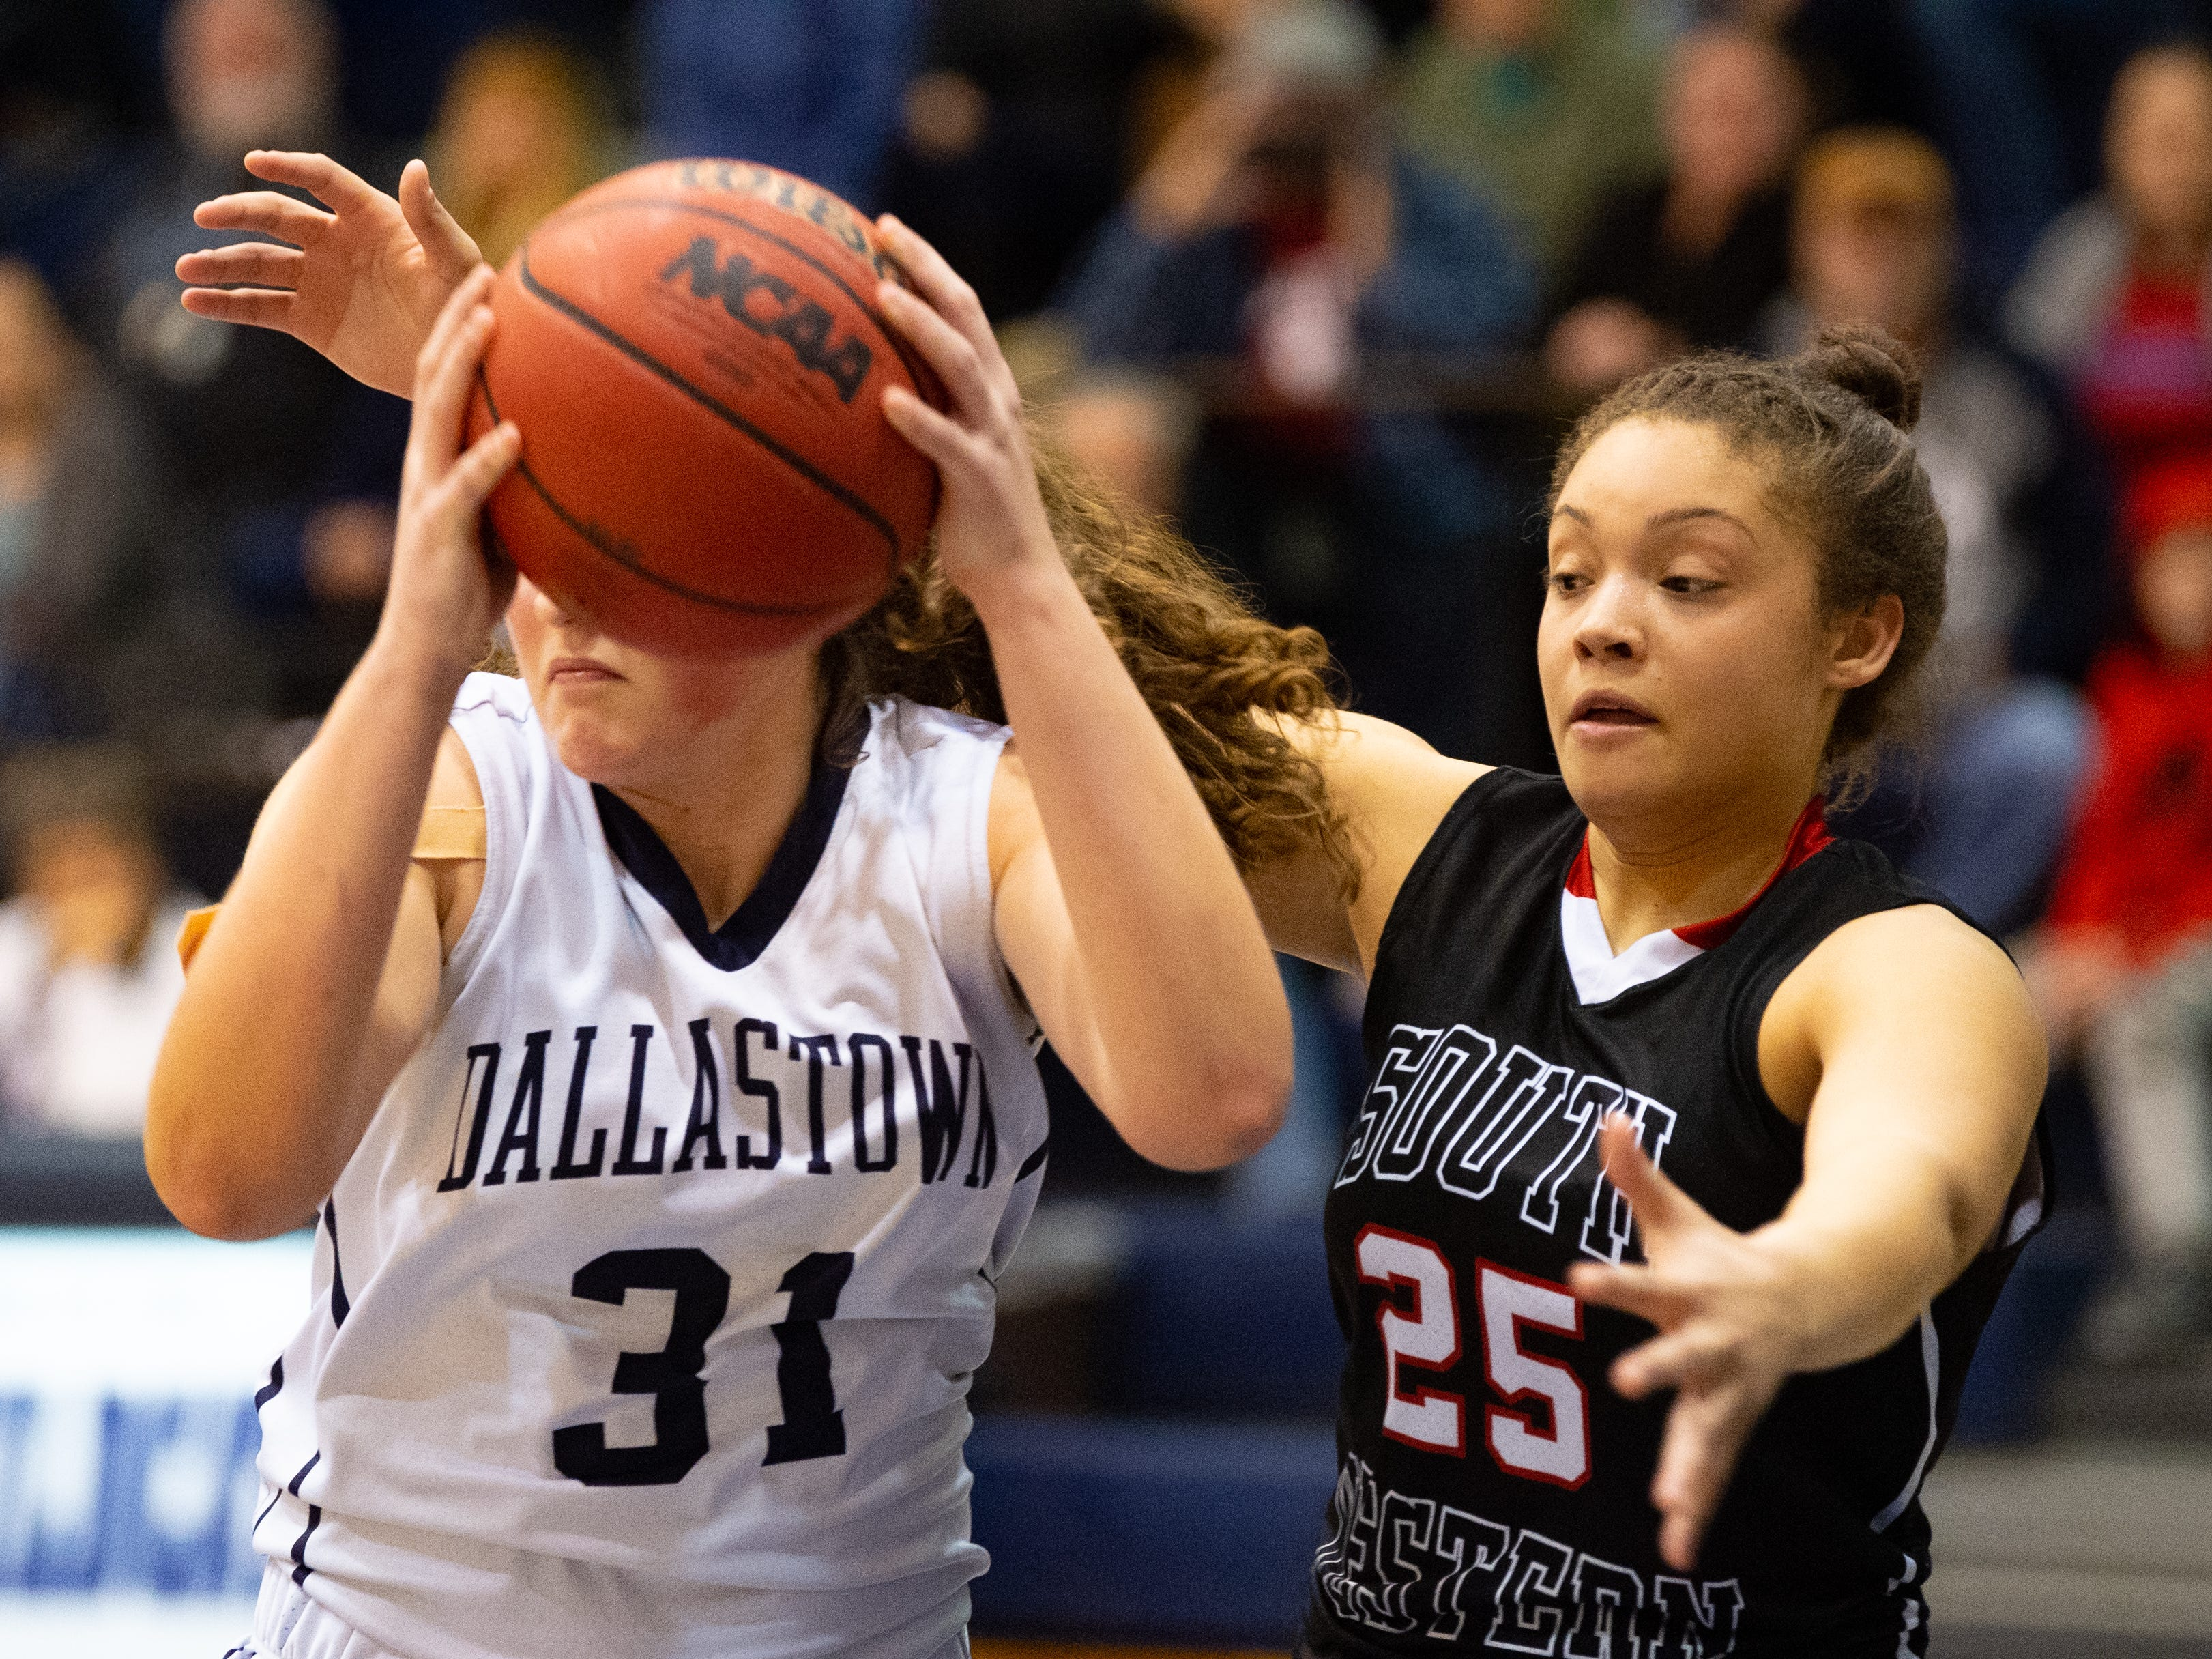 South Western's Ali St. Rose (25) guards Samantha Miller of Dallastown (31) during the YAIAA girls' basketball game, Tuesday, January 22, 2019. The Wildcats defeated the Mustangs 38-35.